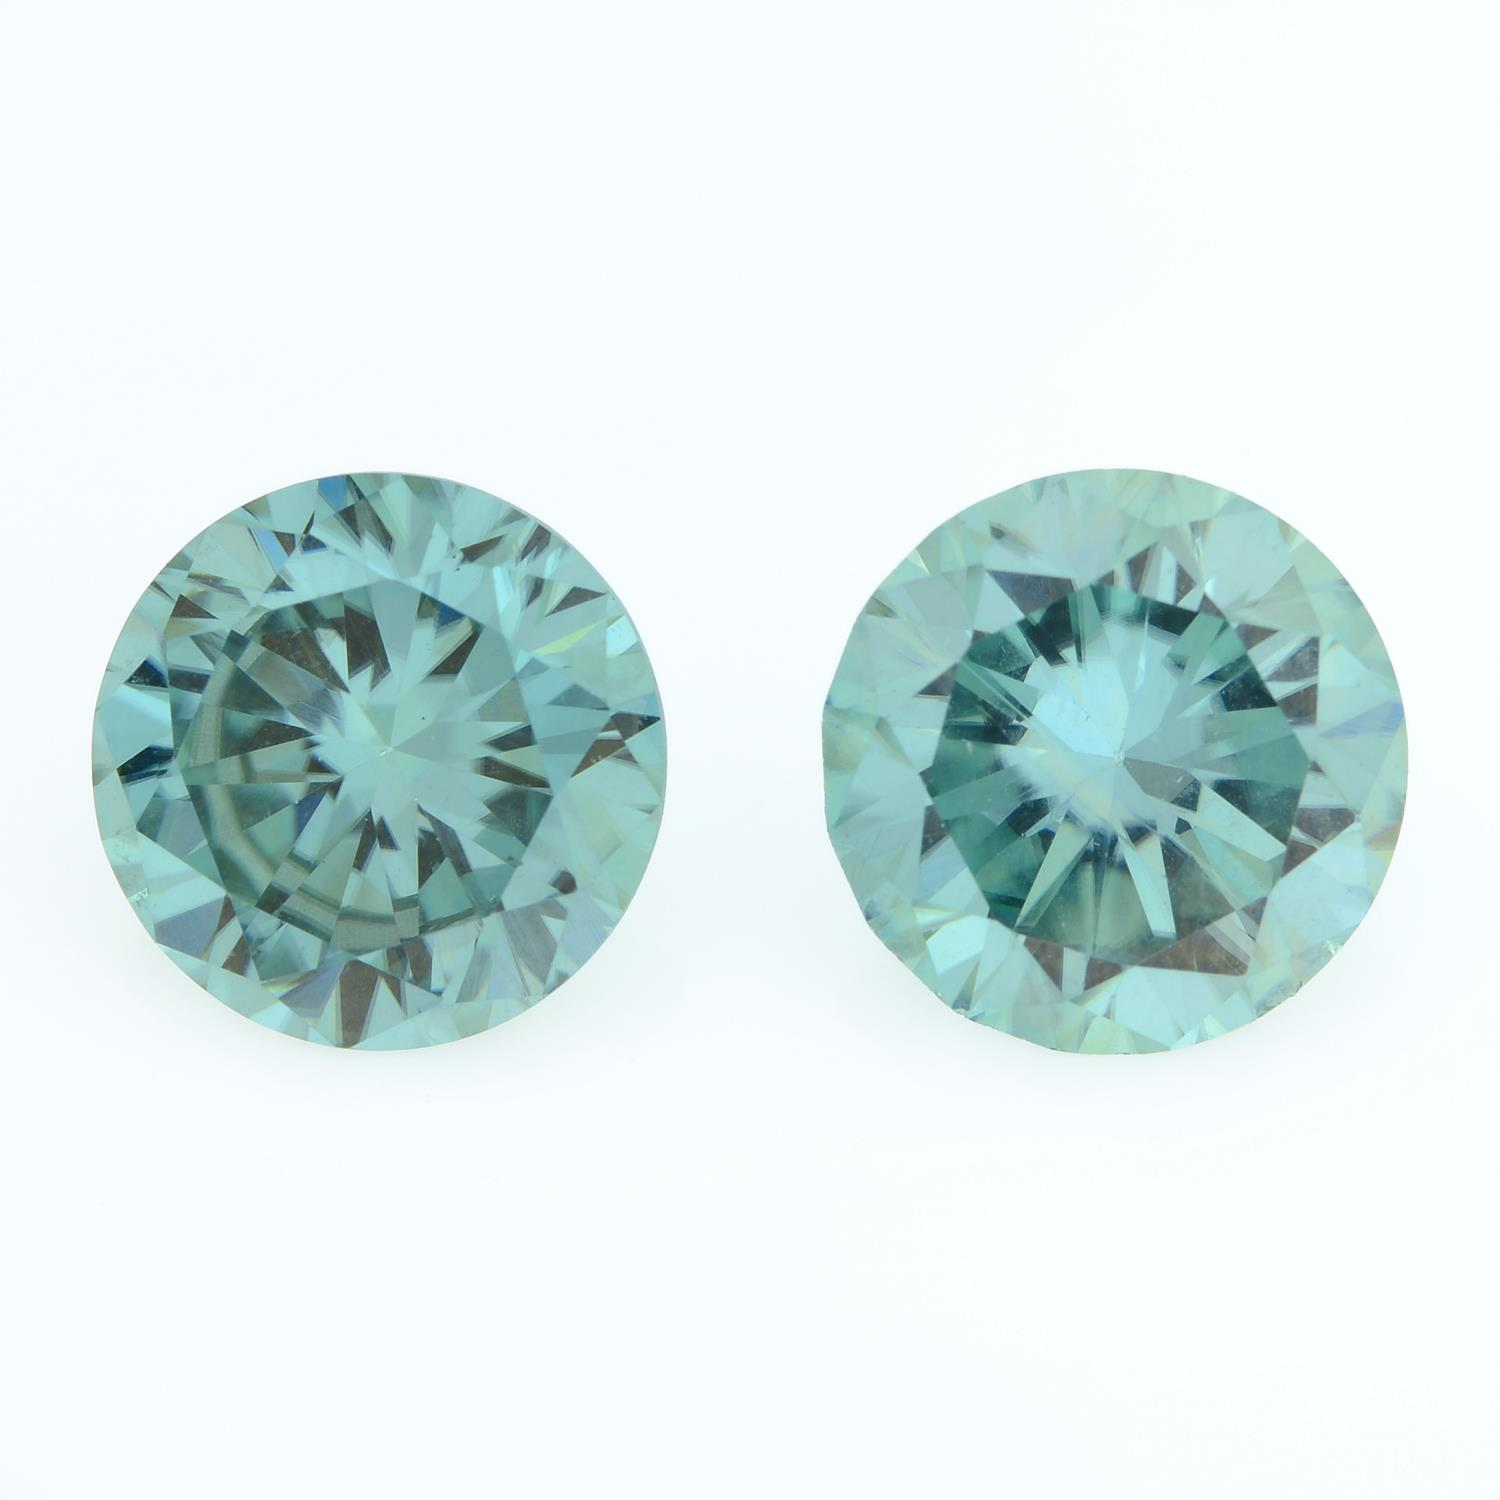 A pair of circular-shape green synthetic moissanite, total weight 6.48cts.